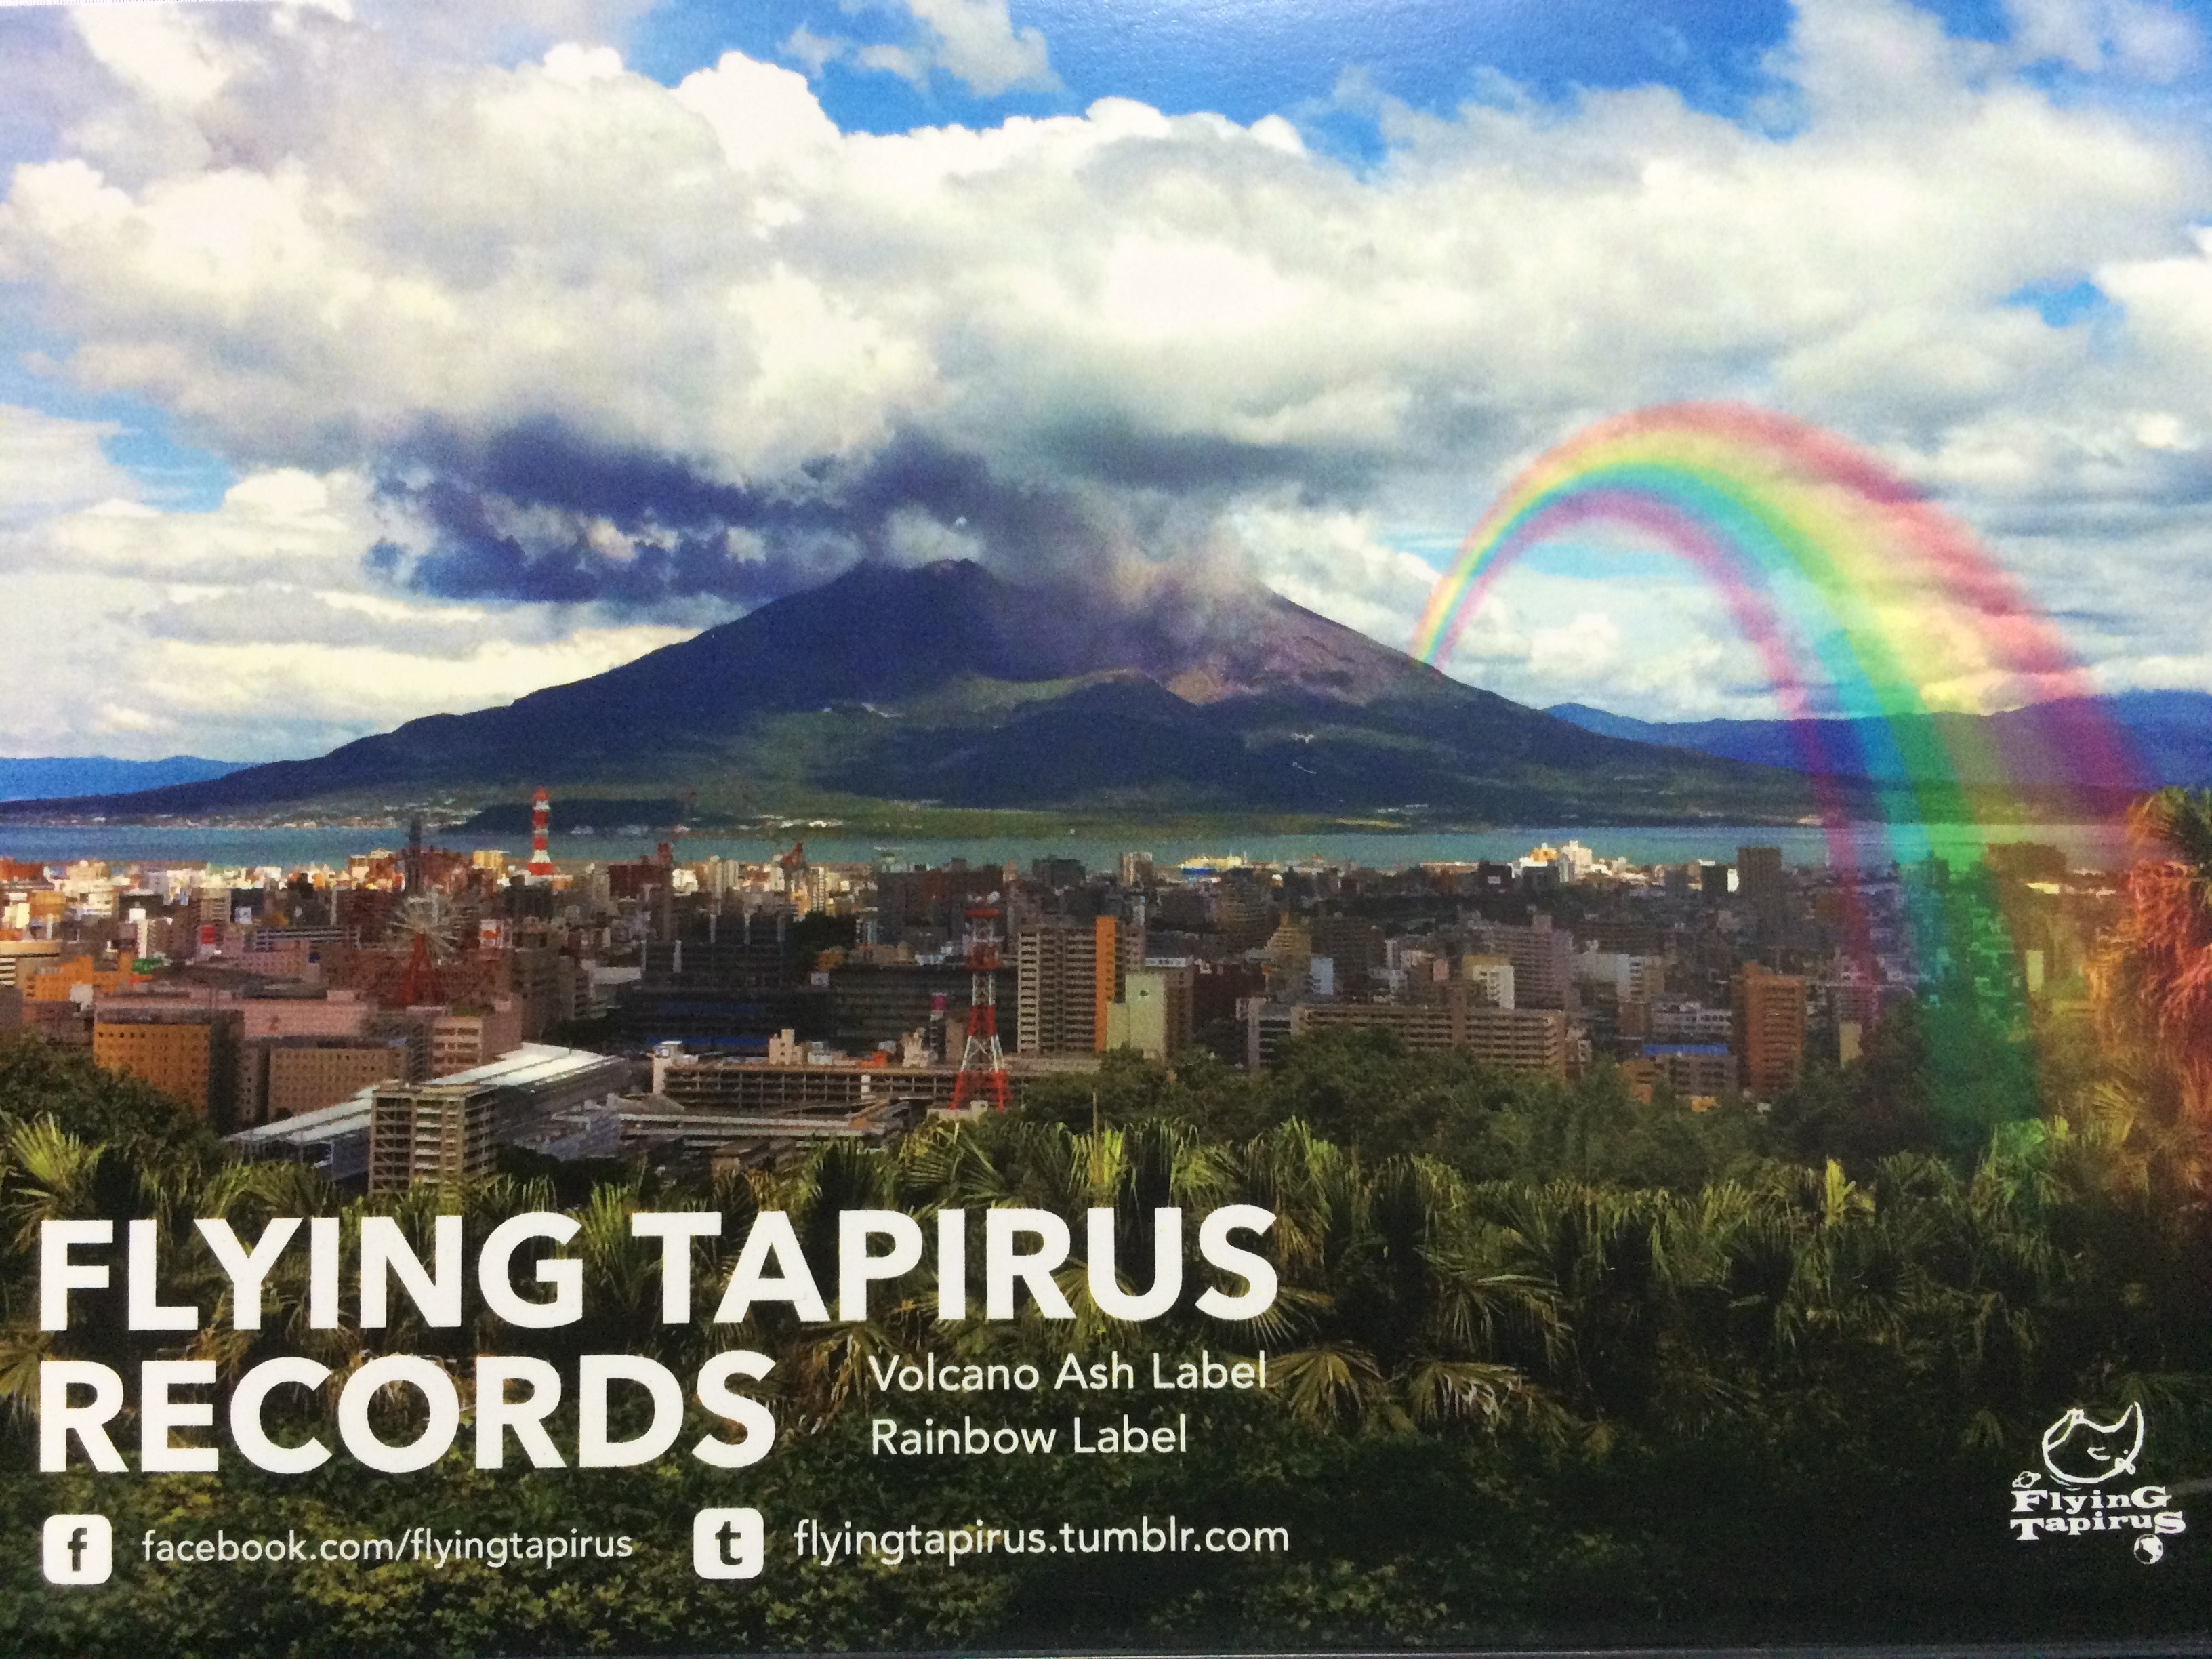 TAPIRUS RECORDS